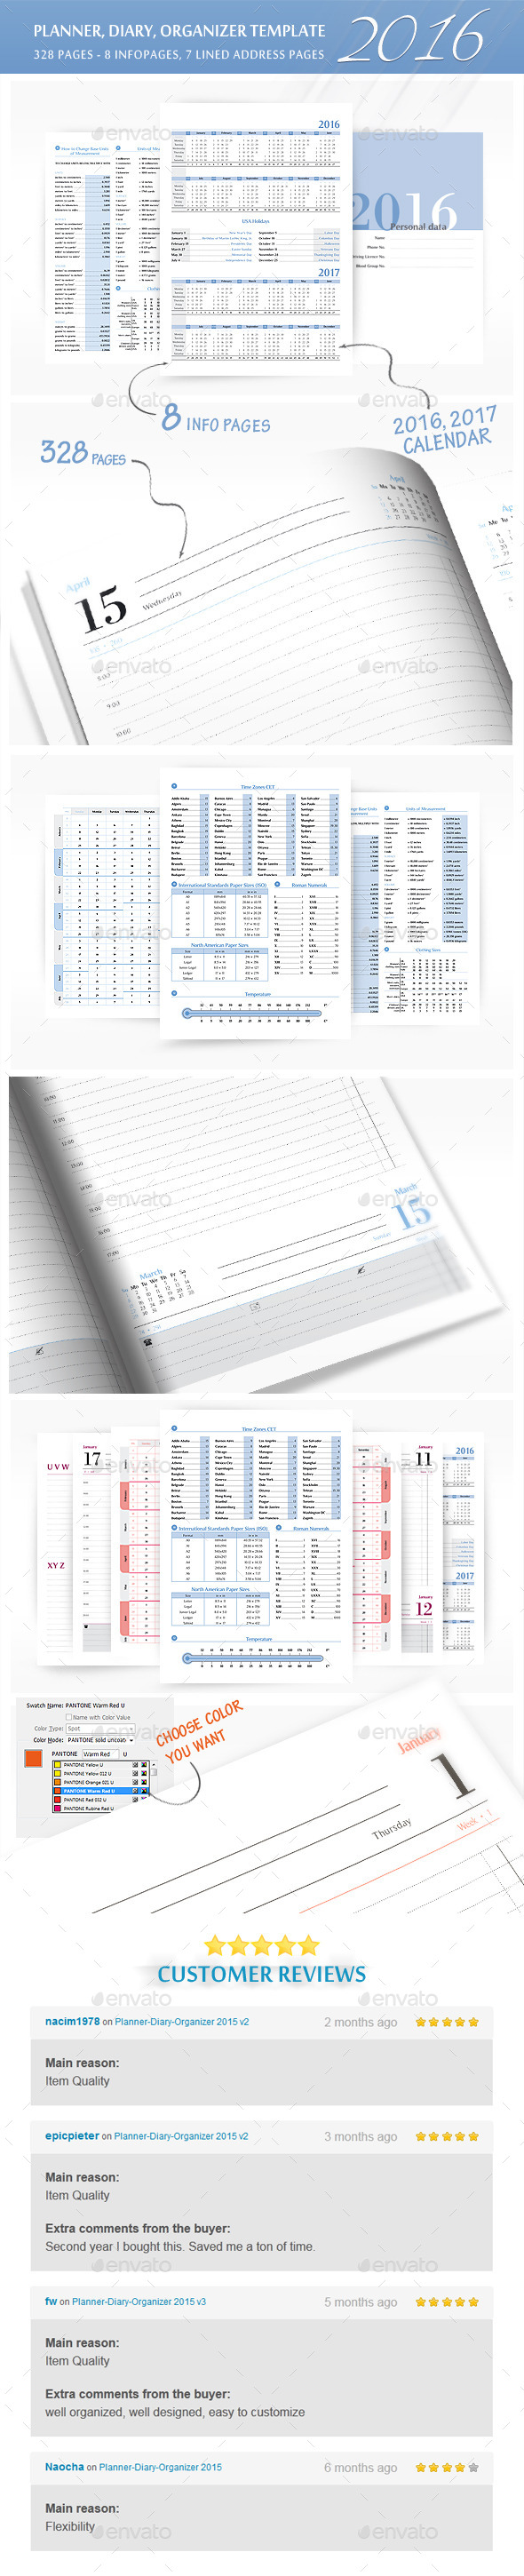 GraphicRiver Planner-Diary-Organizer 2016 11889801